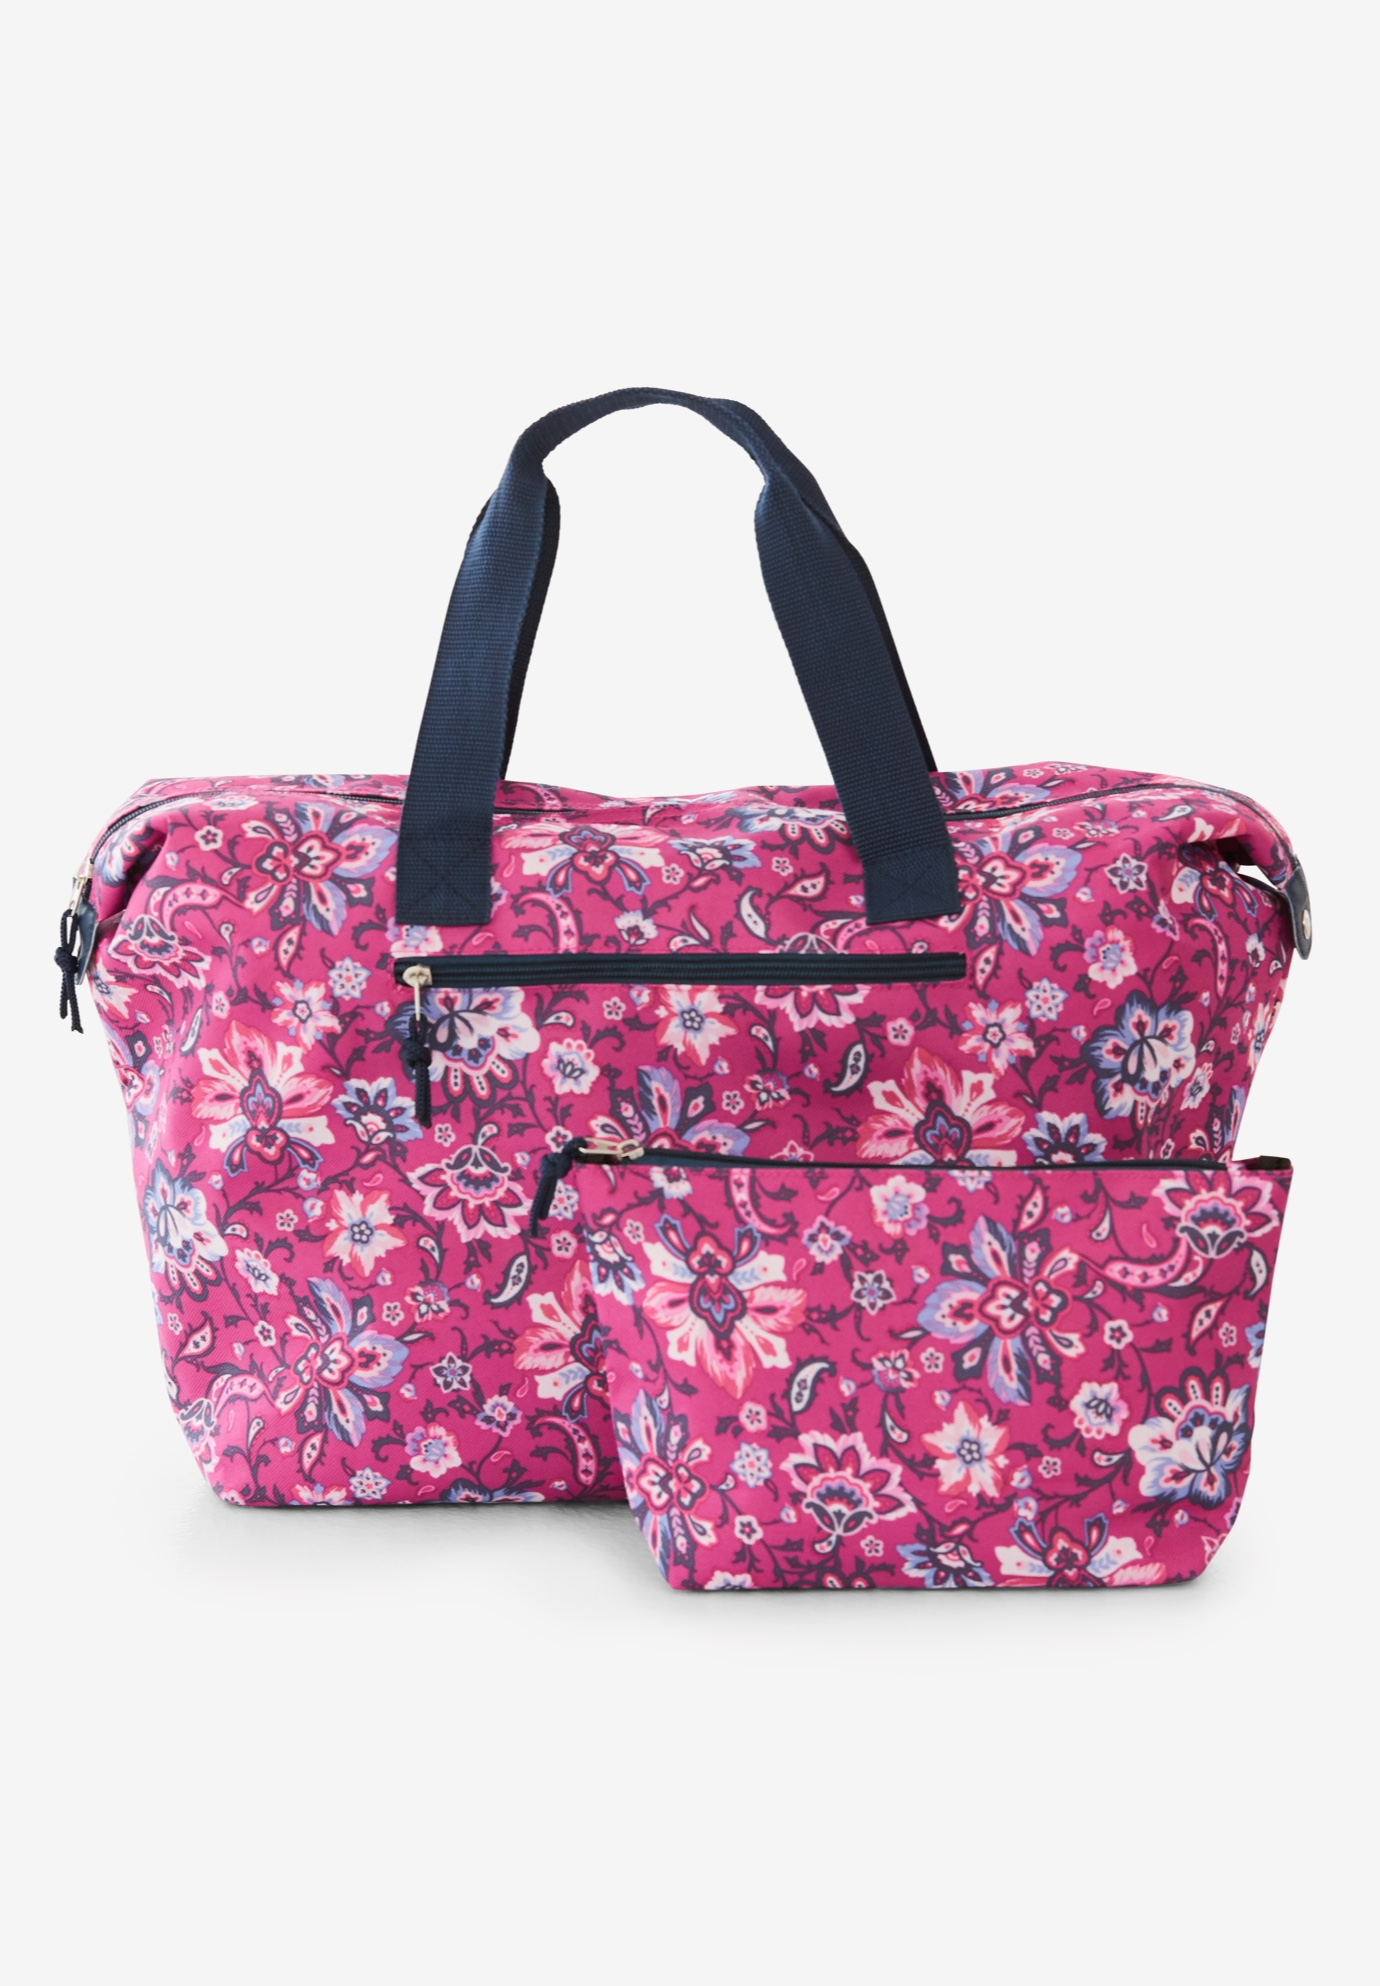 2-Piece Bag Set, RASPBERRY PLAYFUL PAISLEY